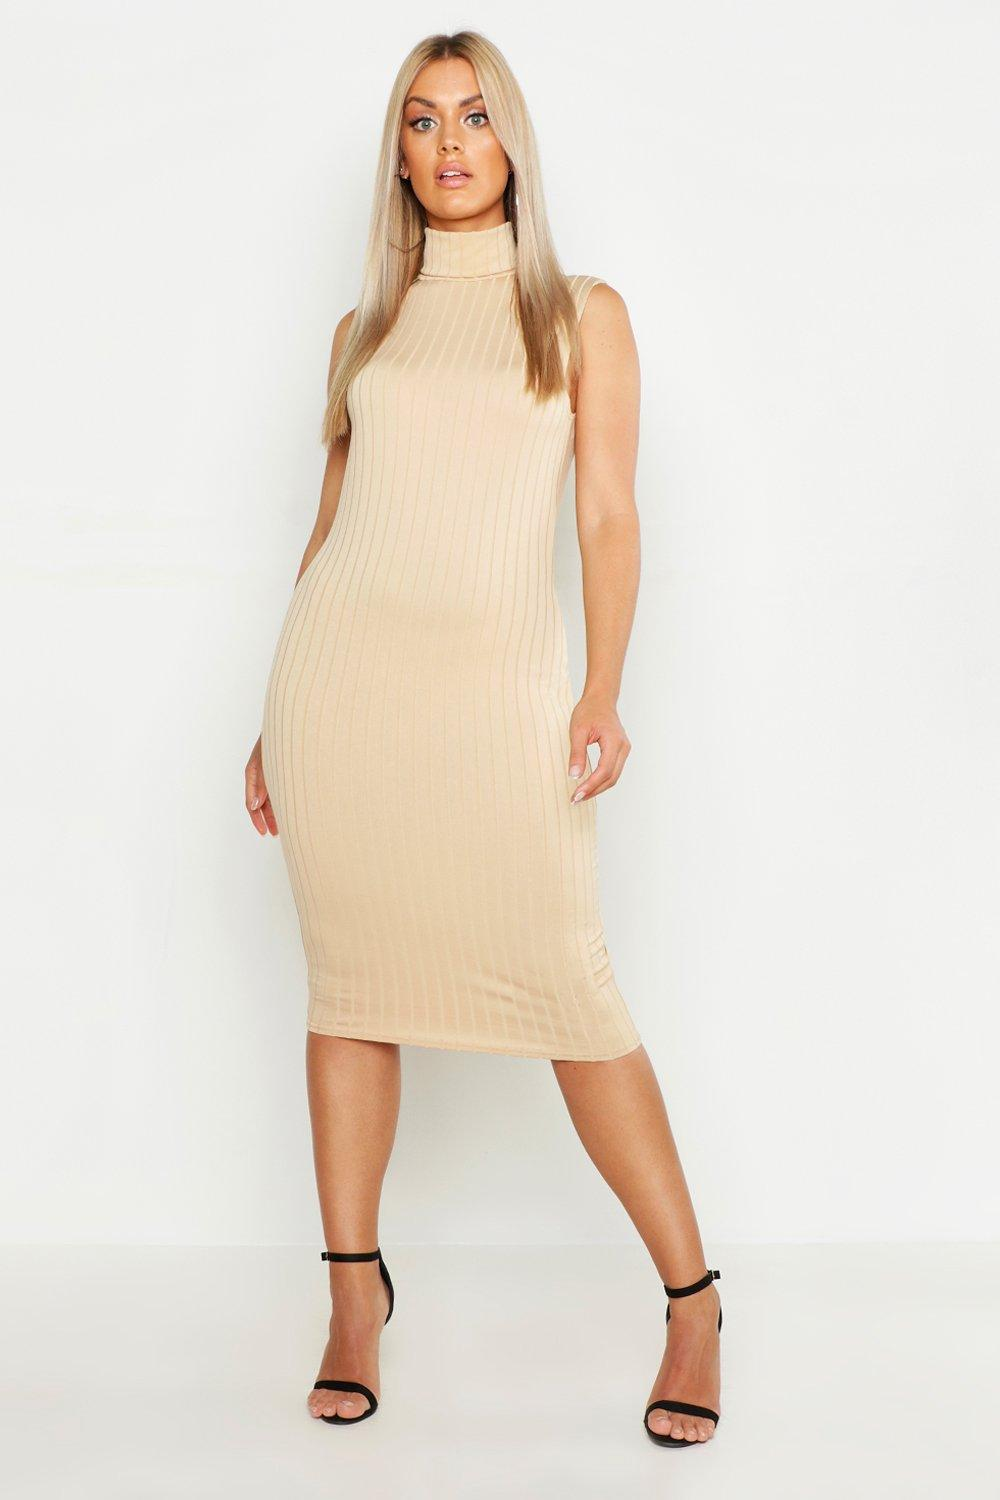 6355fd1ed8fa Womens Taupe Plus Ribbed High Neck Sleevless Midi Dress. Hover to zoom